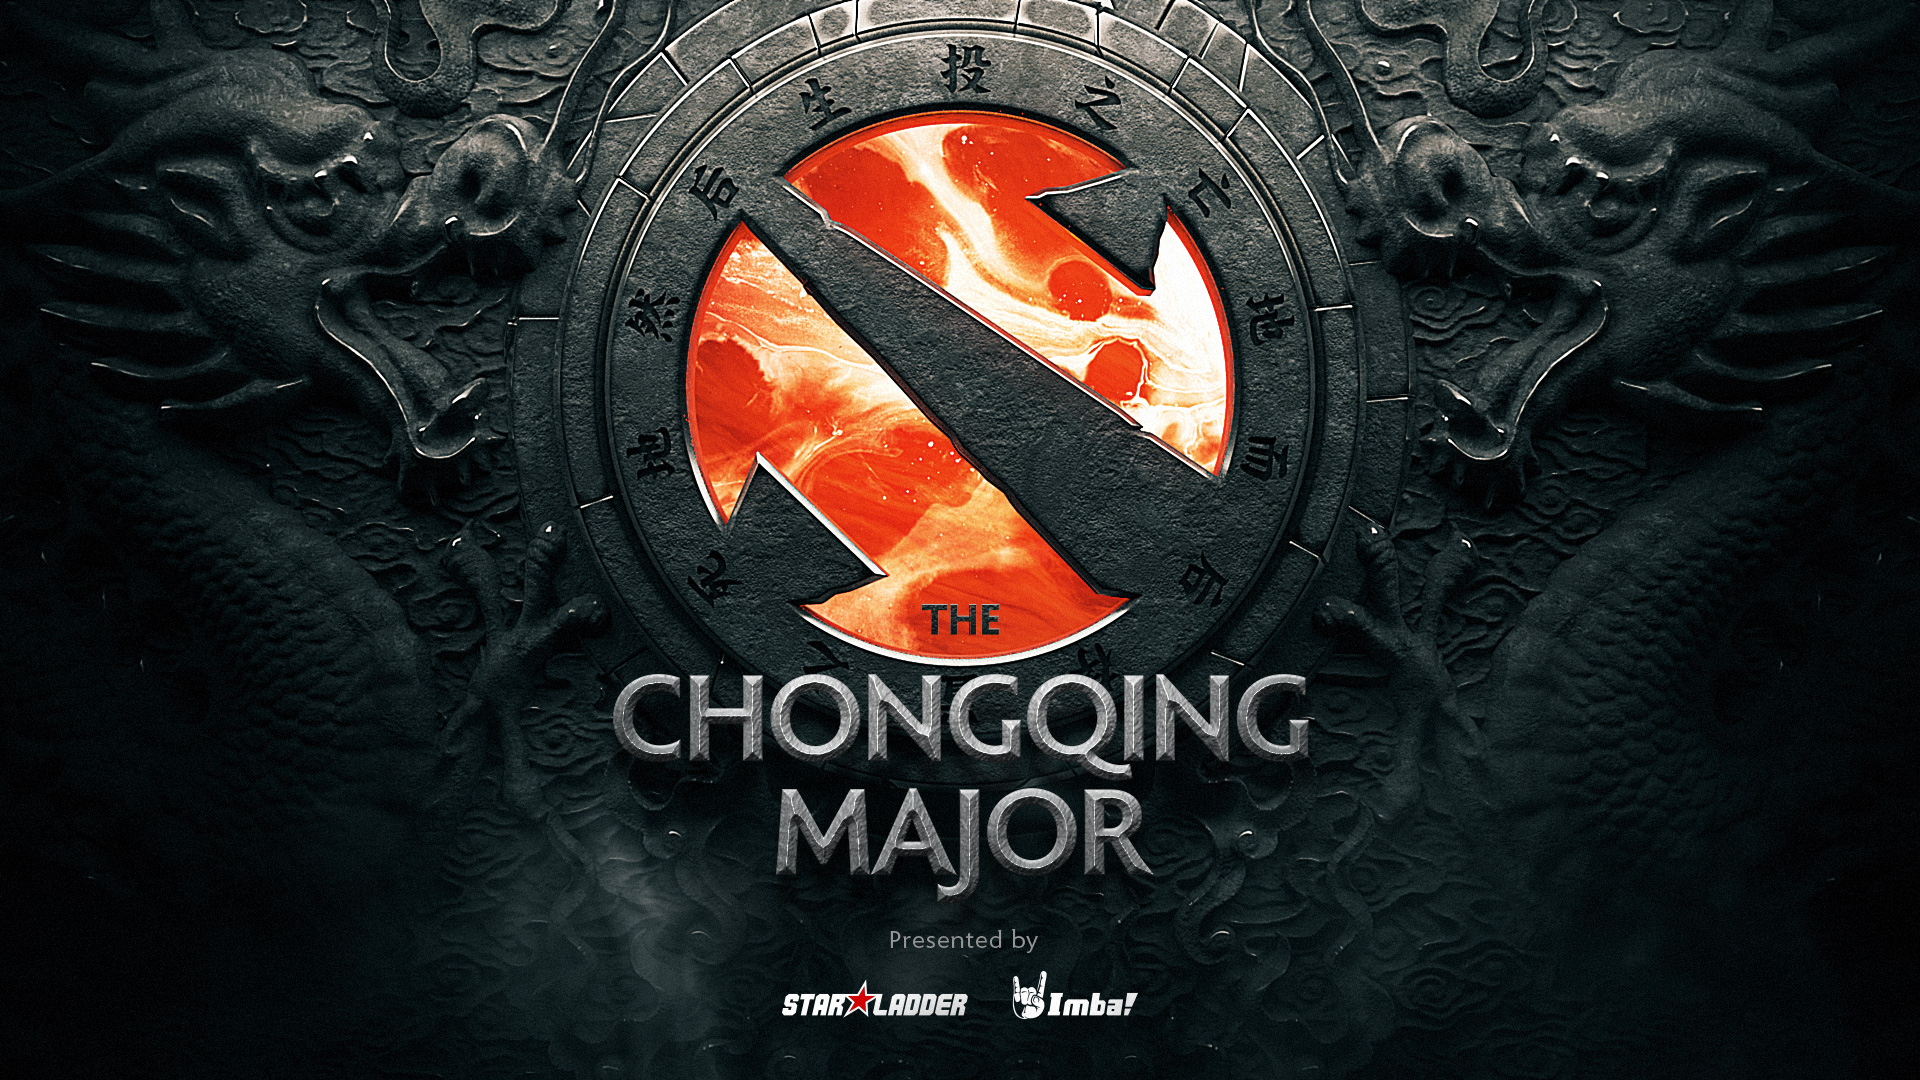 The Chongqing Major